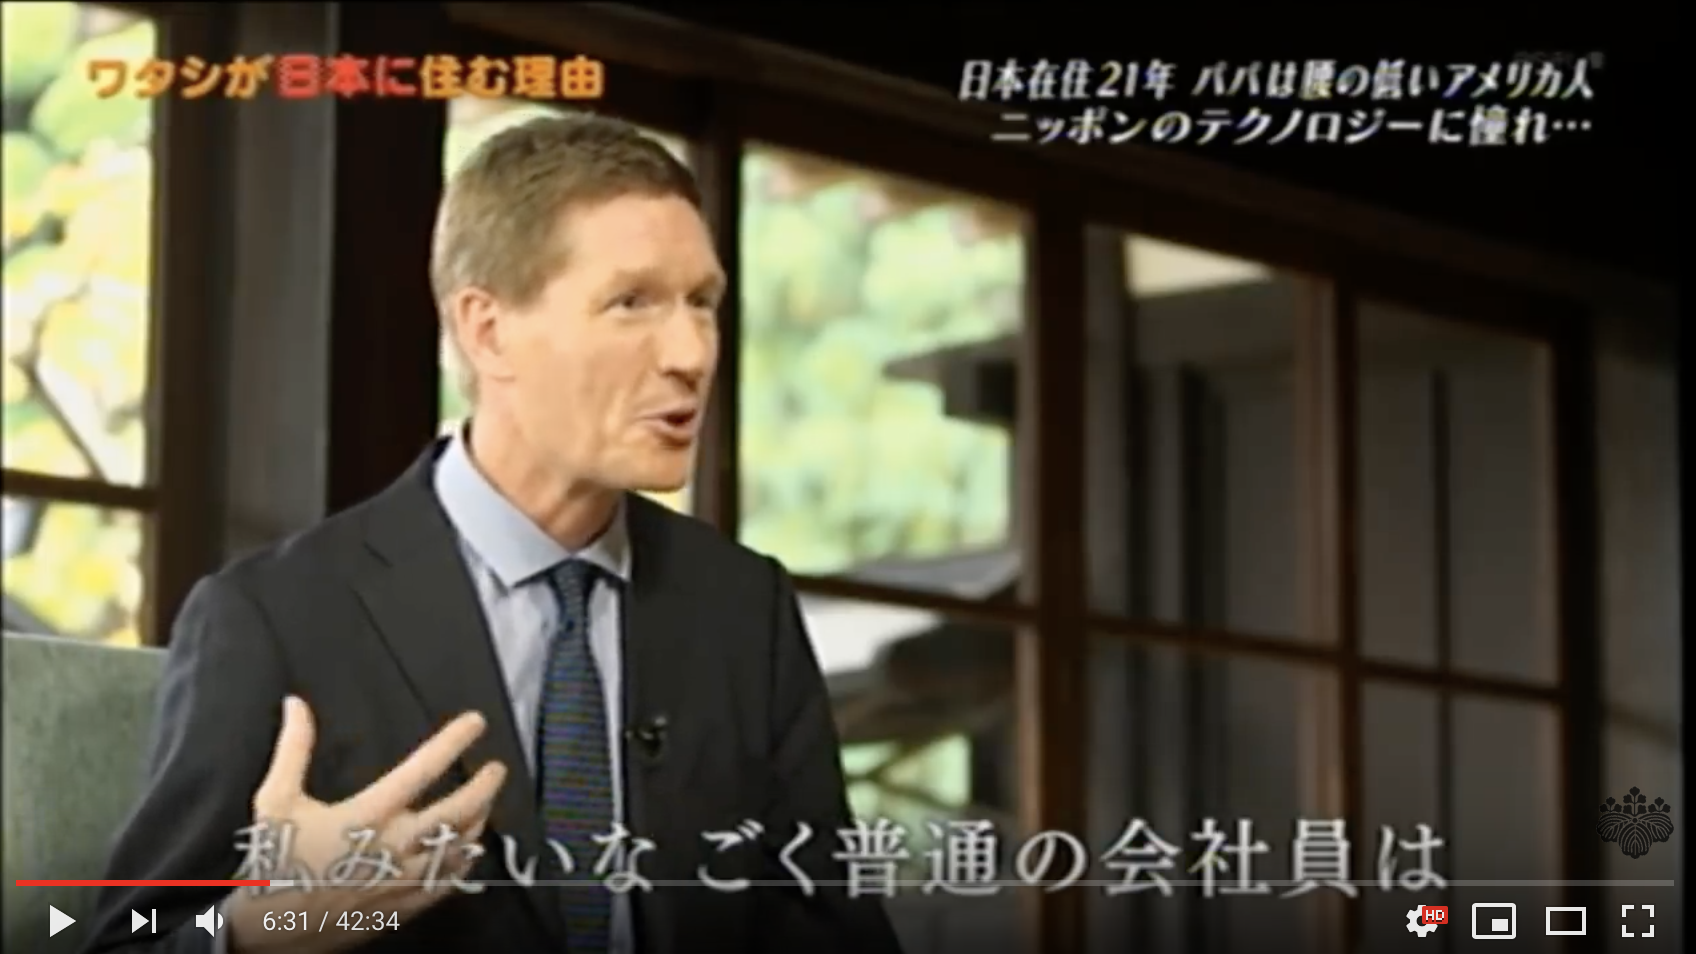 American executive who has worked in Japan over 20 years, how he could start his career in Japan.